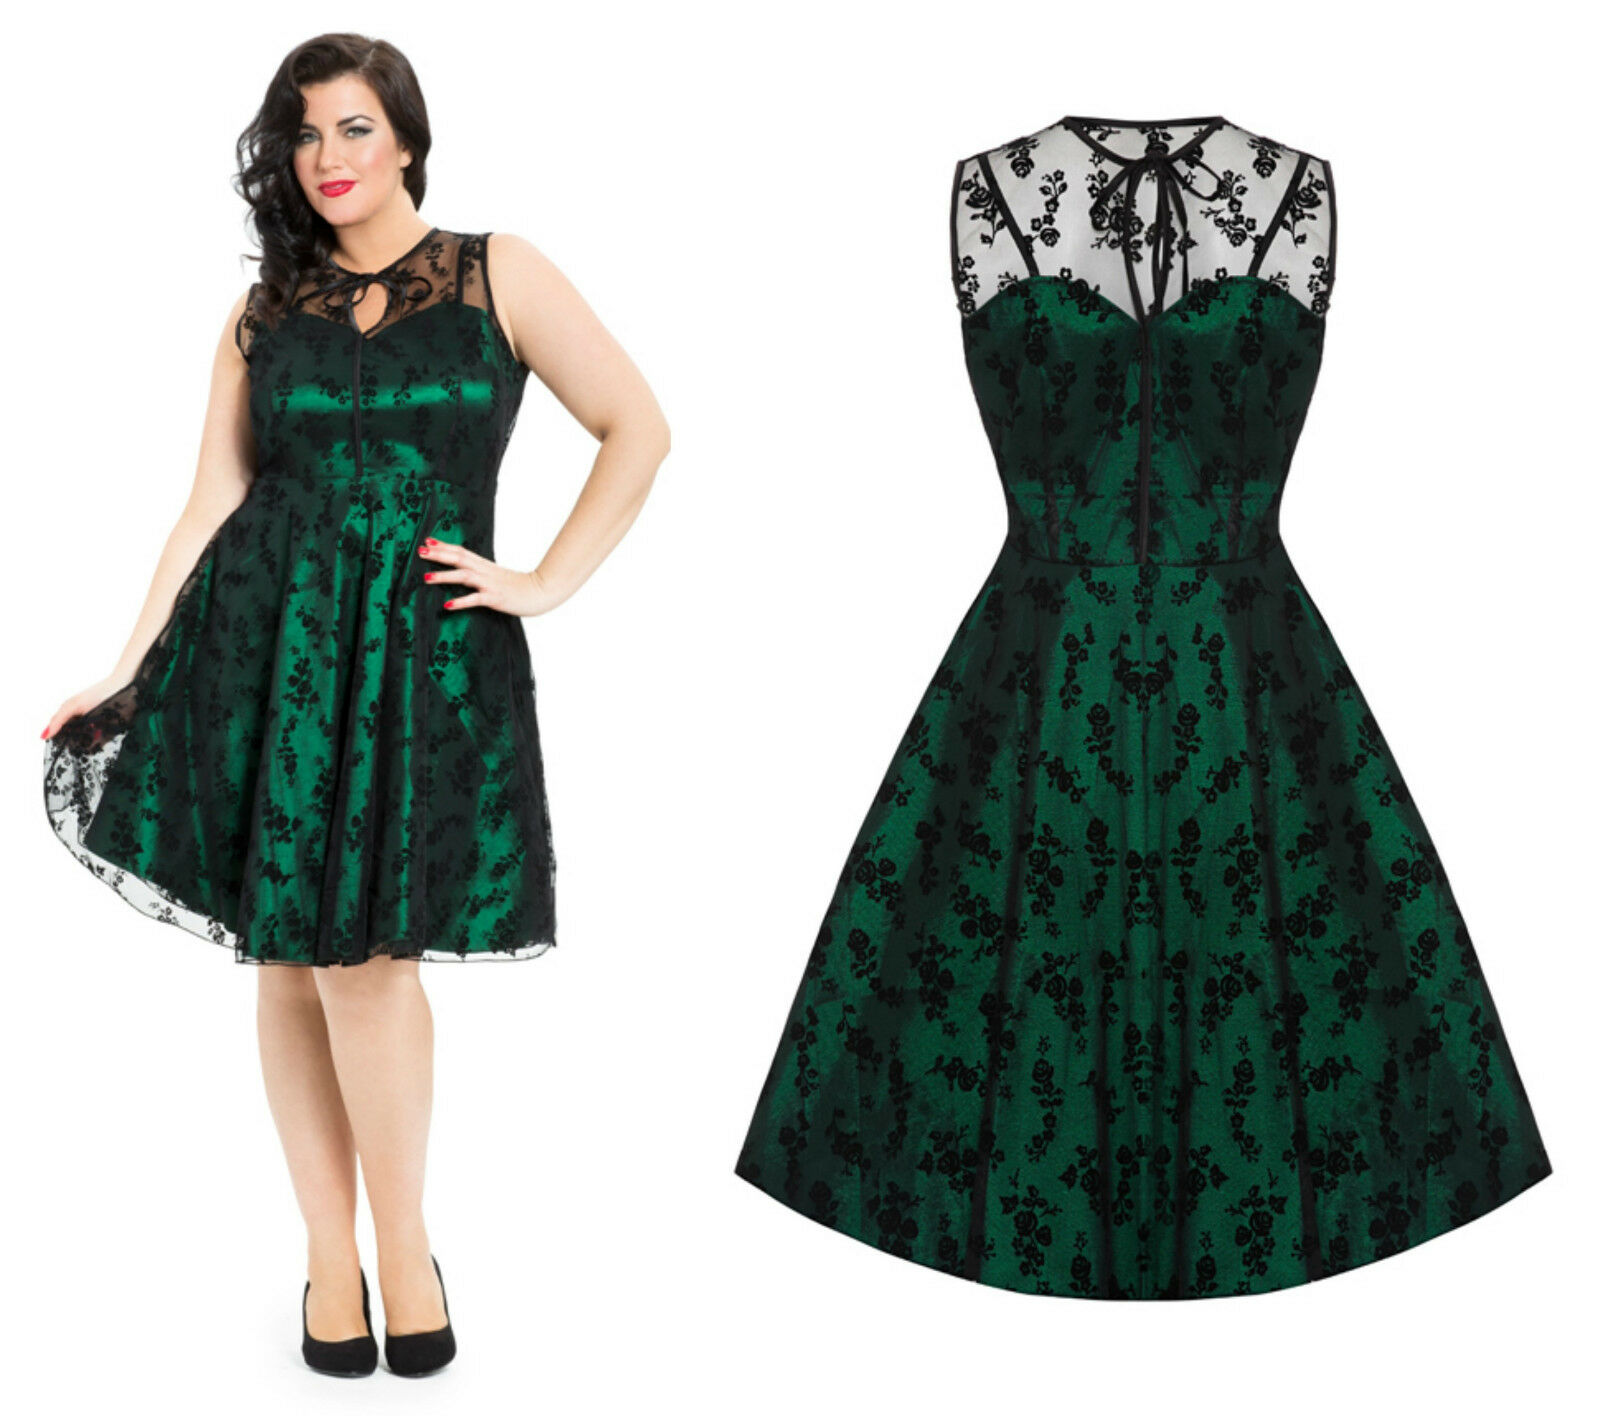 f53ebfd1a94 Emerald Green Lace Voodoo Vixen 1950 s Rockabilly Vintage Party Plus Size  Dress